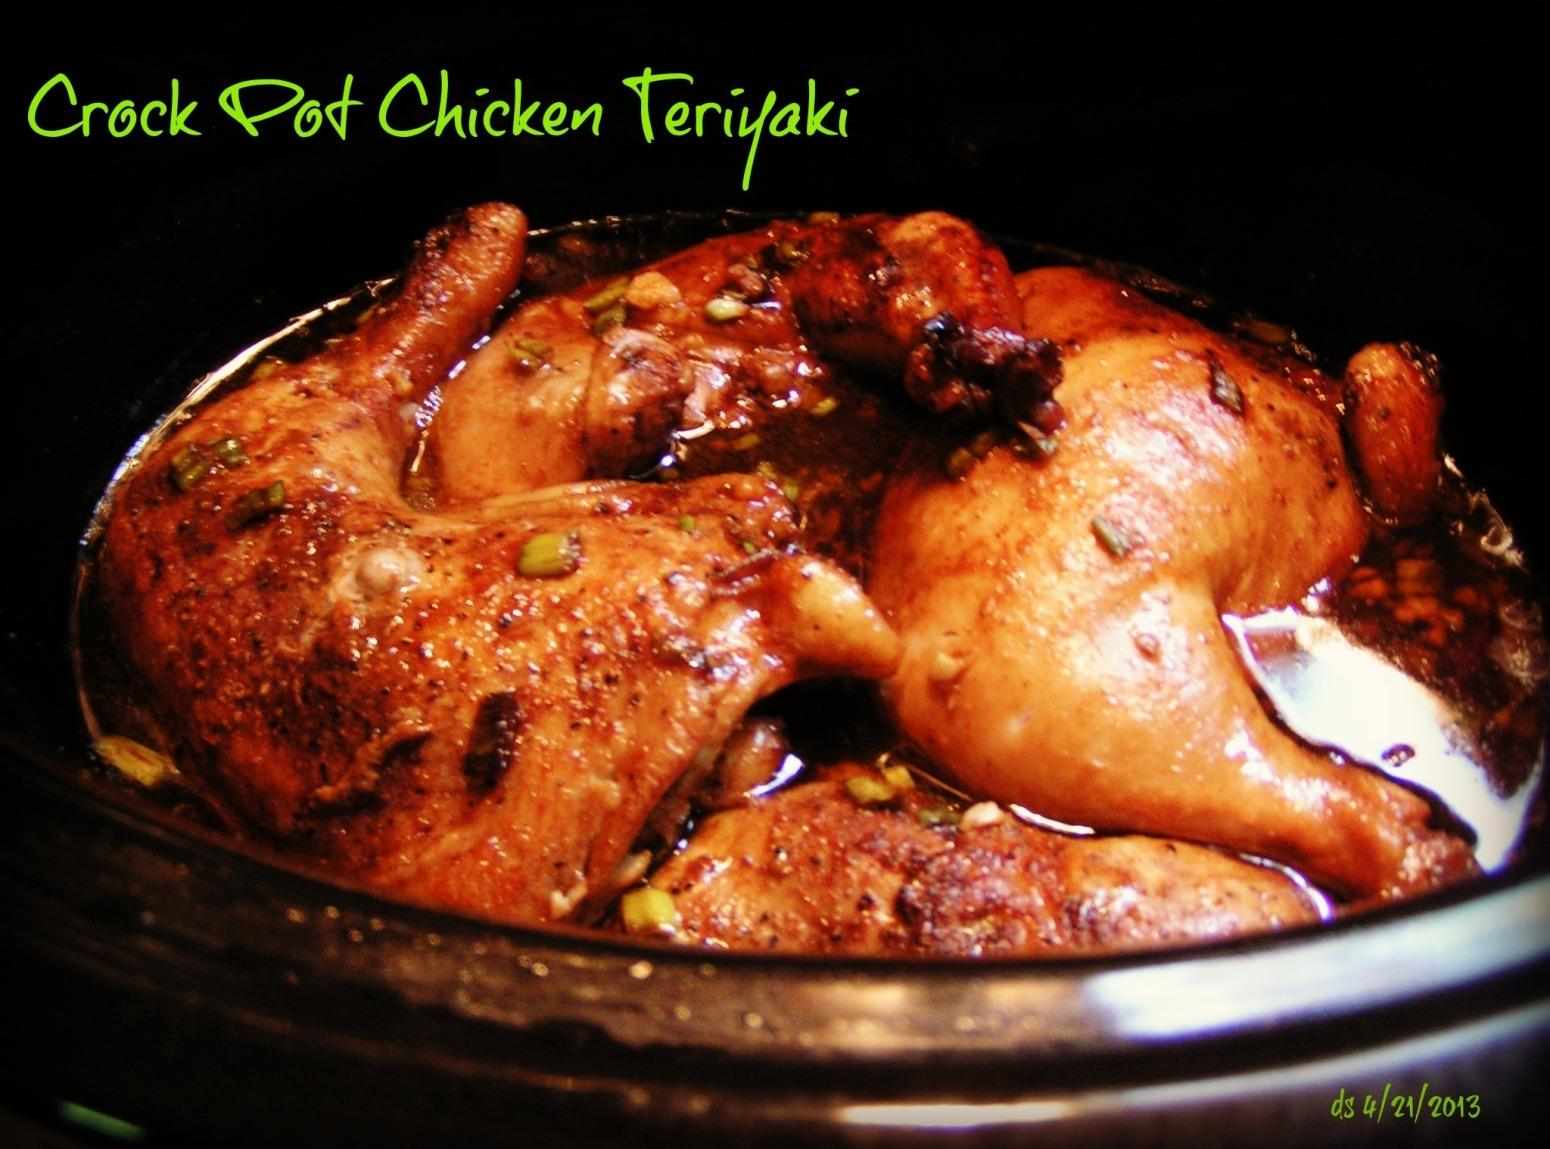 Crock pot chicken teriyaki recipe just a pinch recipes for Cooking chicken thighs in crock pot